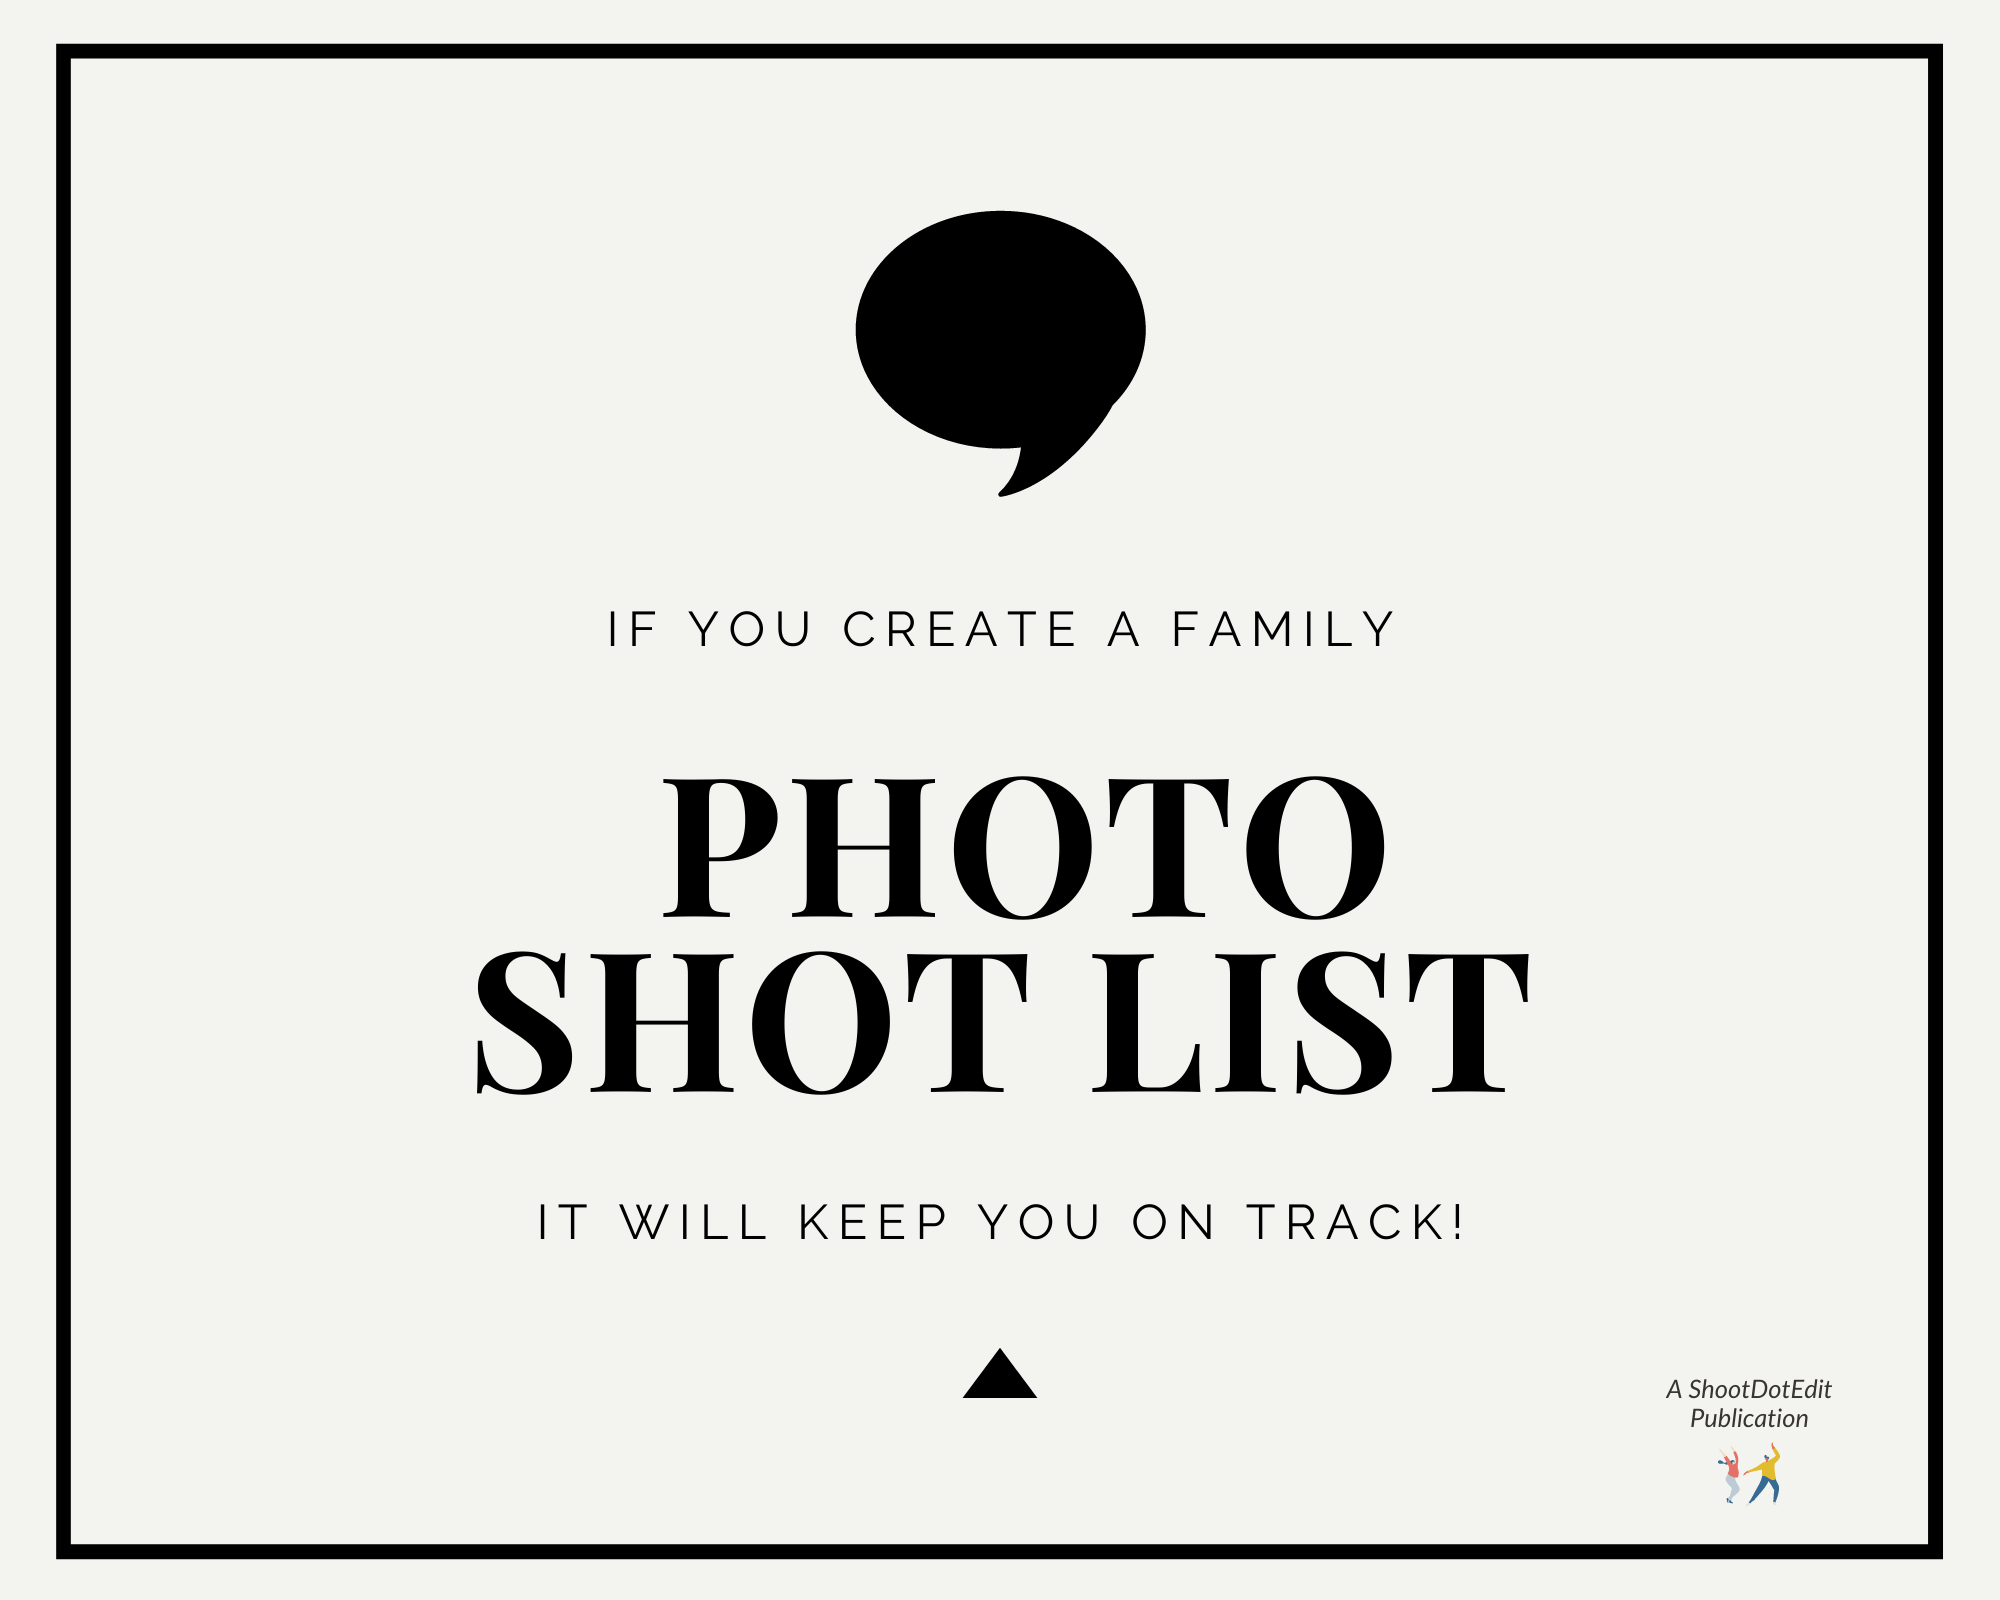 Infographic stating if you create a family photo shot list it will keep you on track